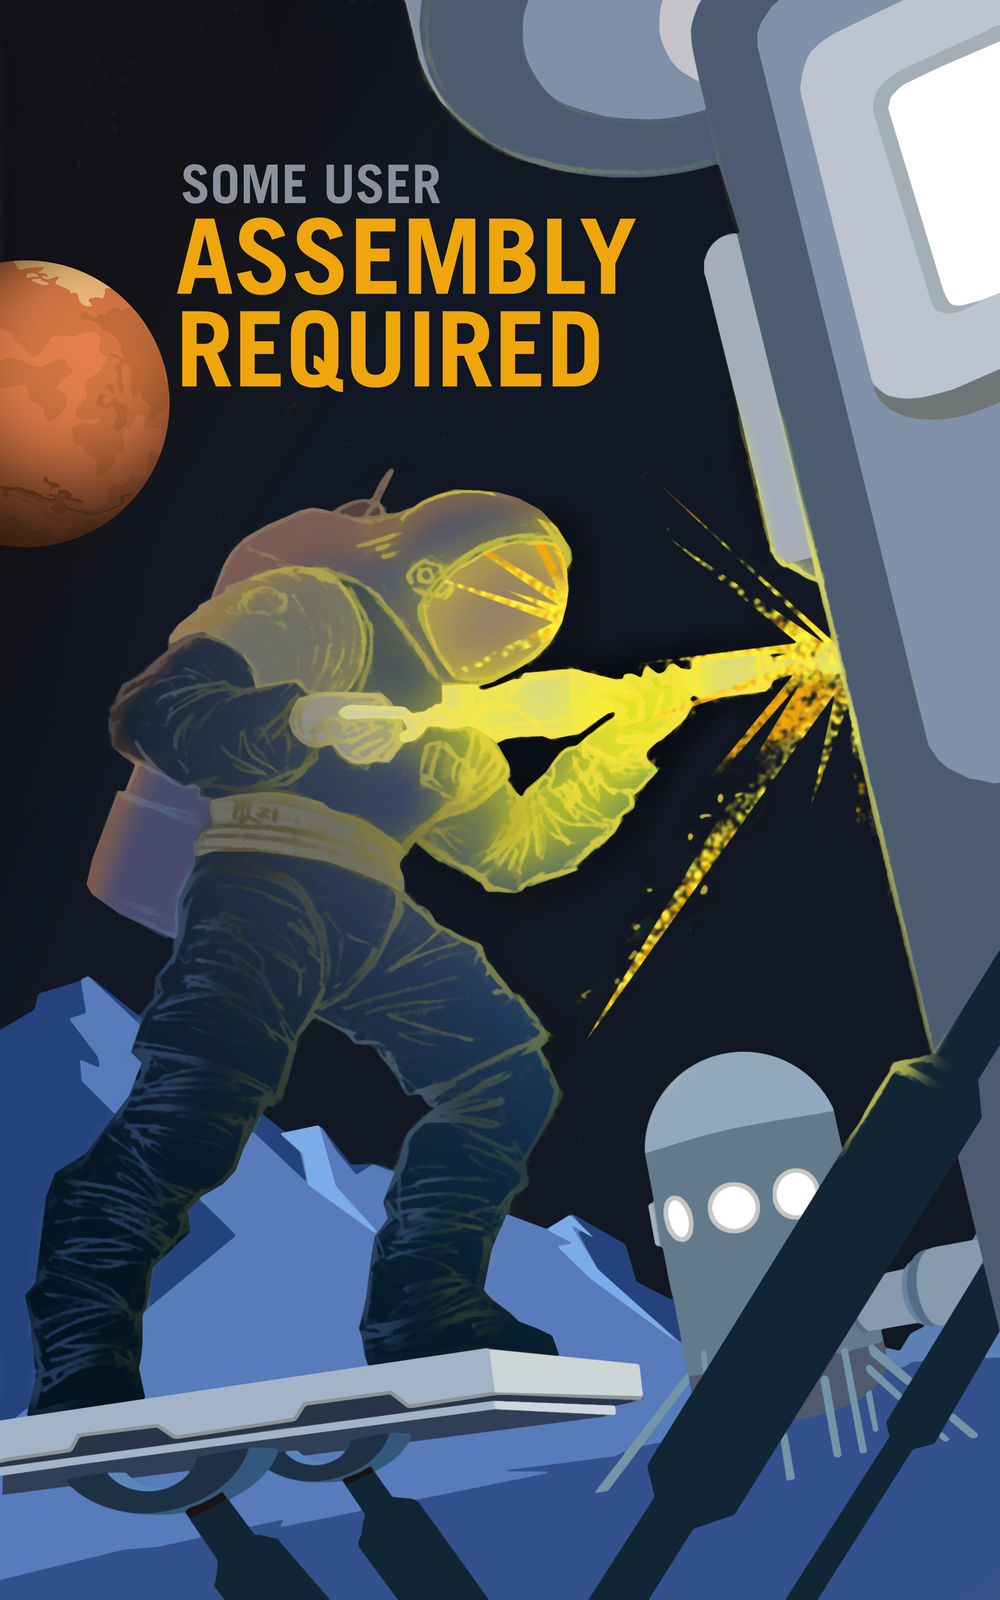 some-user-assembly-required-nasa-recruitment-poster